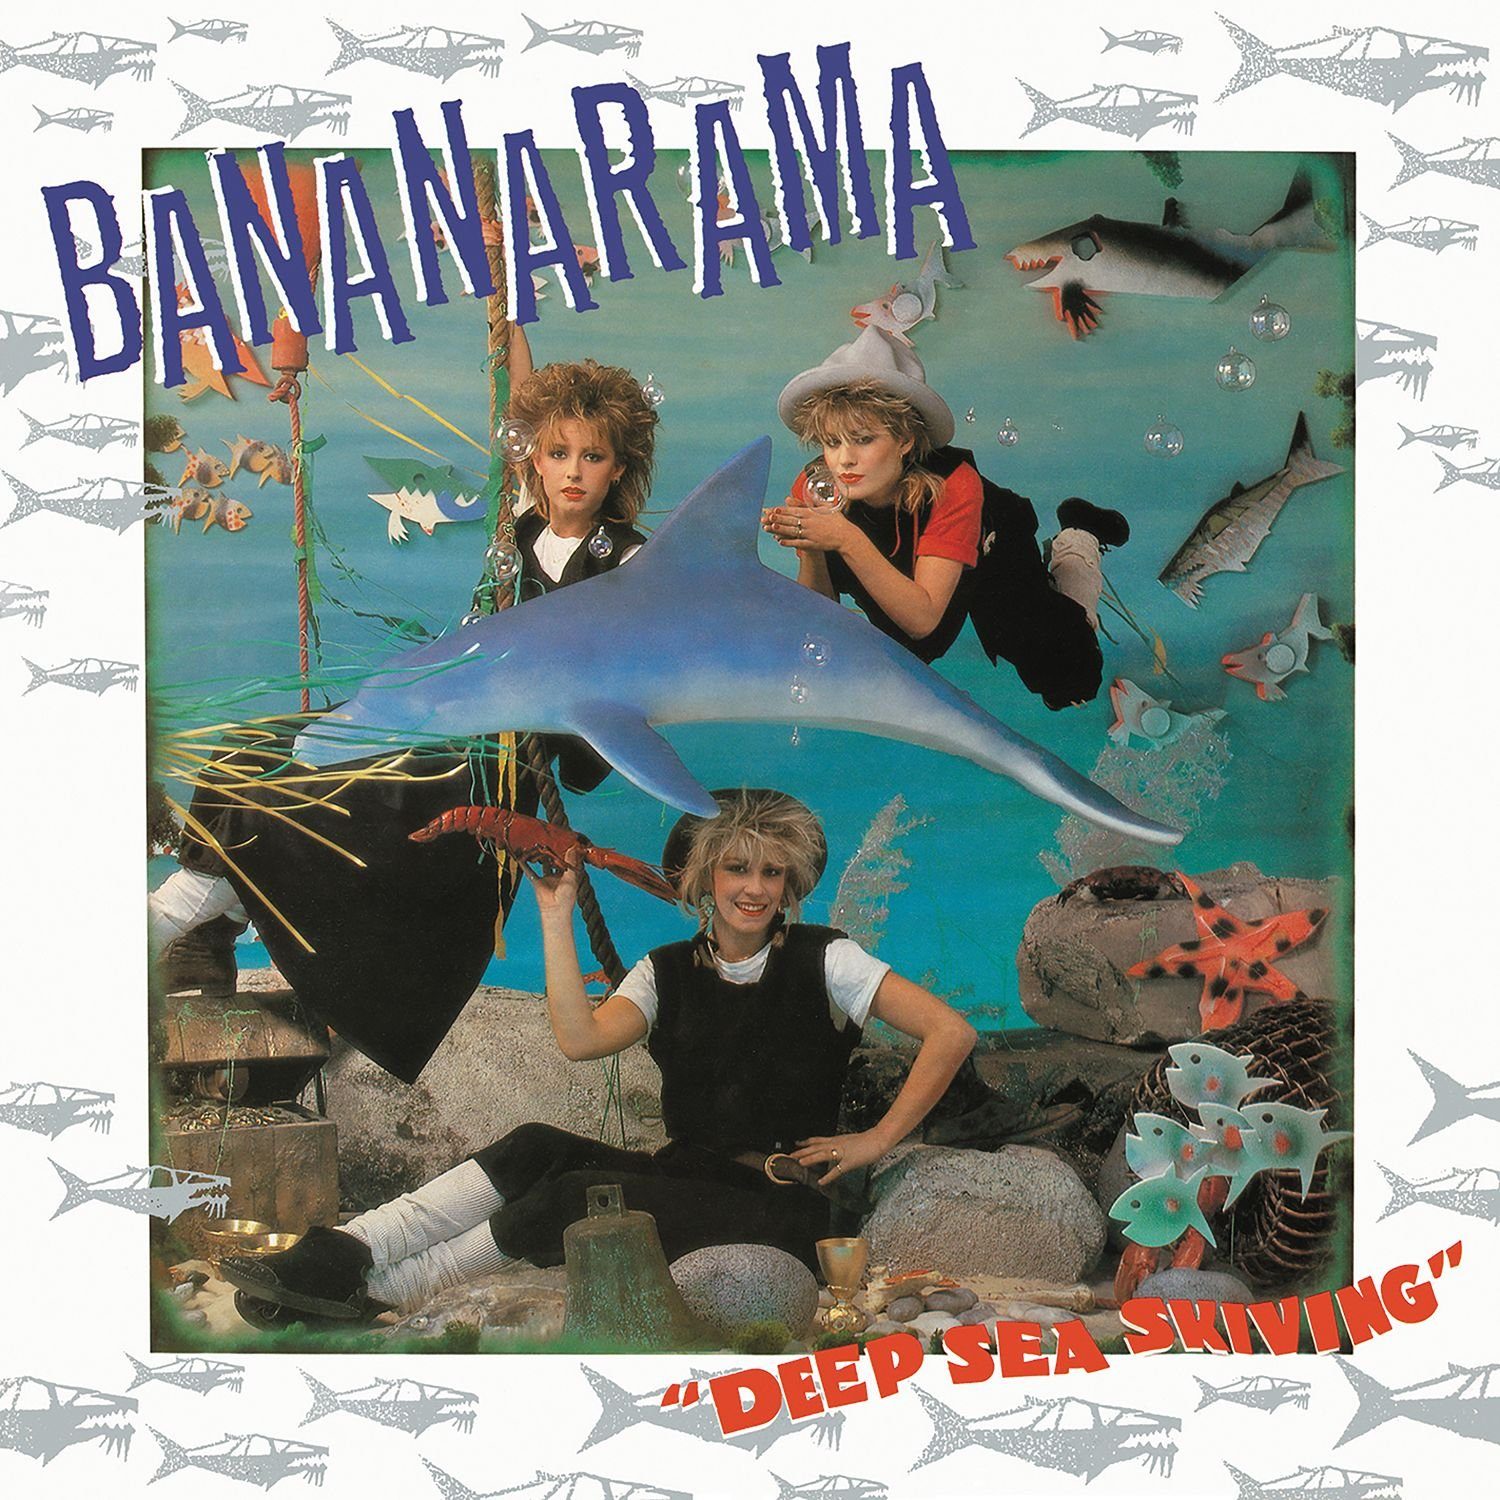 Bananarama – Deep Sea Skiving (2013) [FLAC]